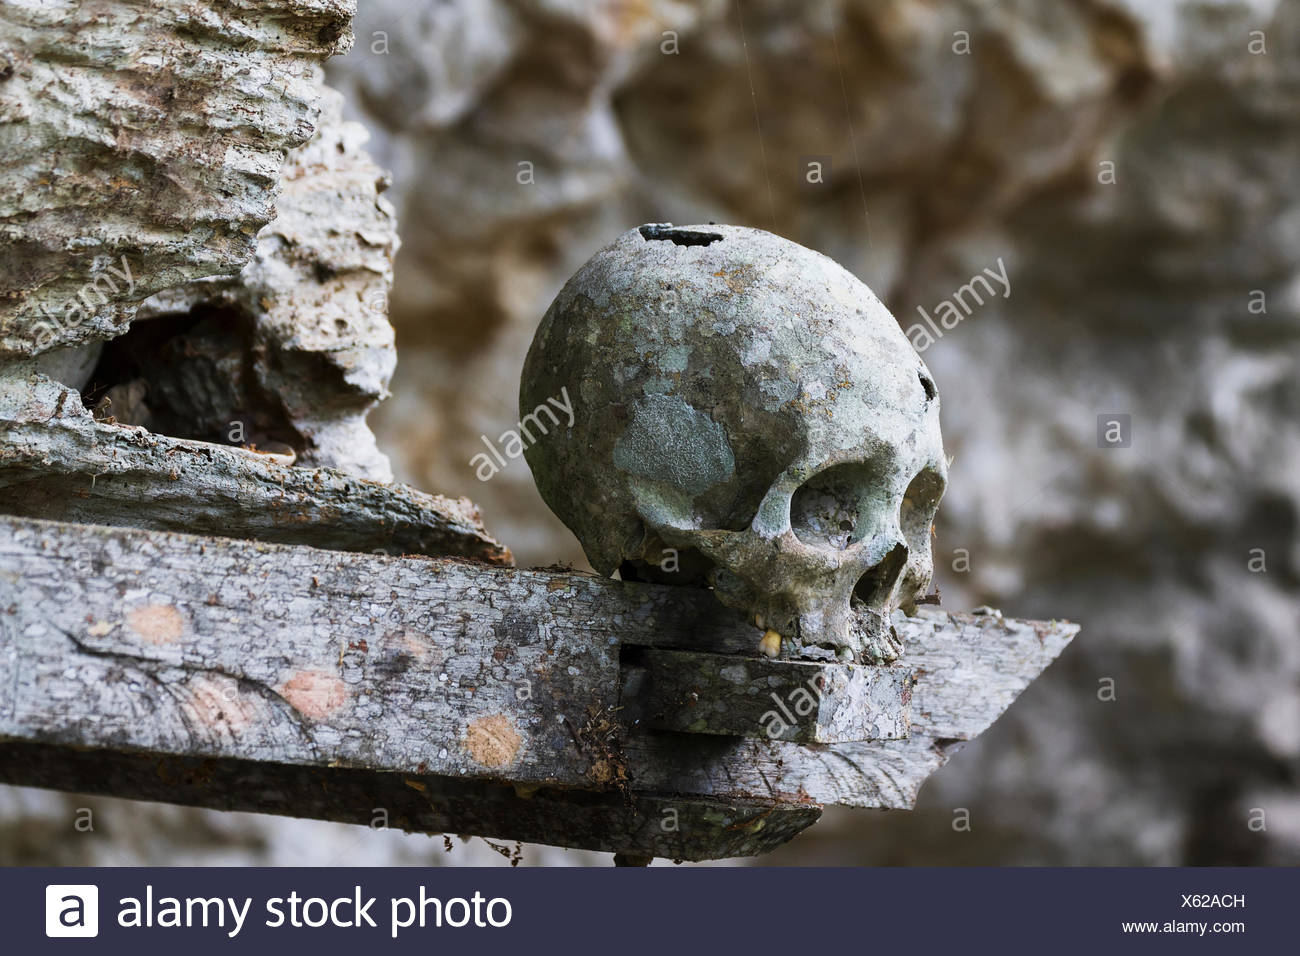 Skulls on a wooden coffin, Kete Kesu, Toraja Land, South Sulawesi, Indonesia - Stock Image